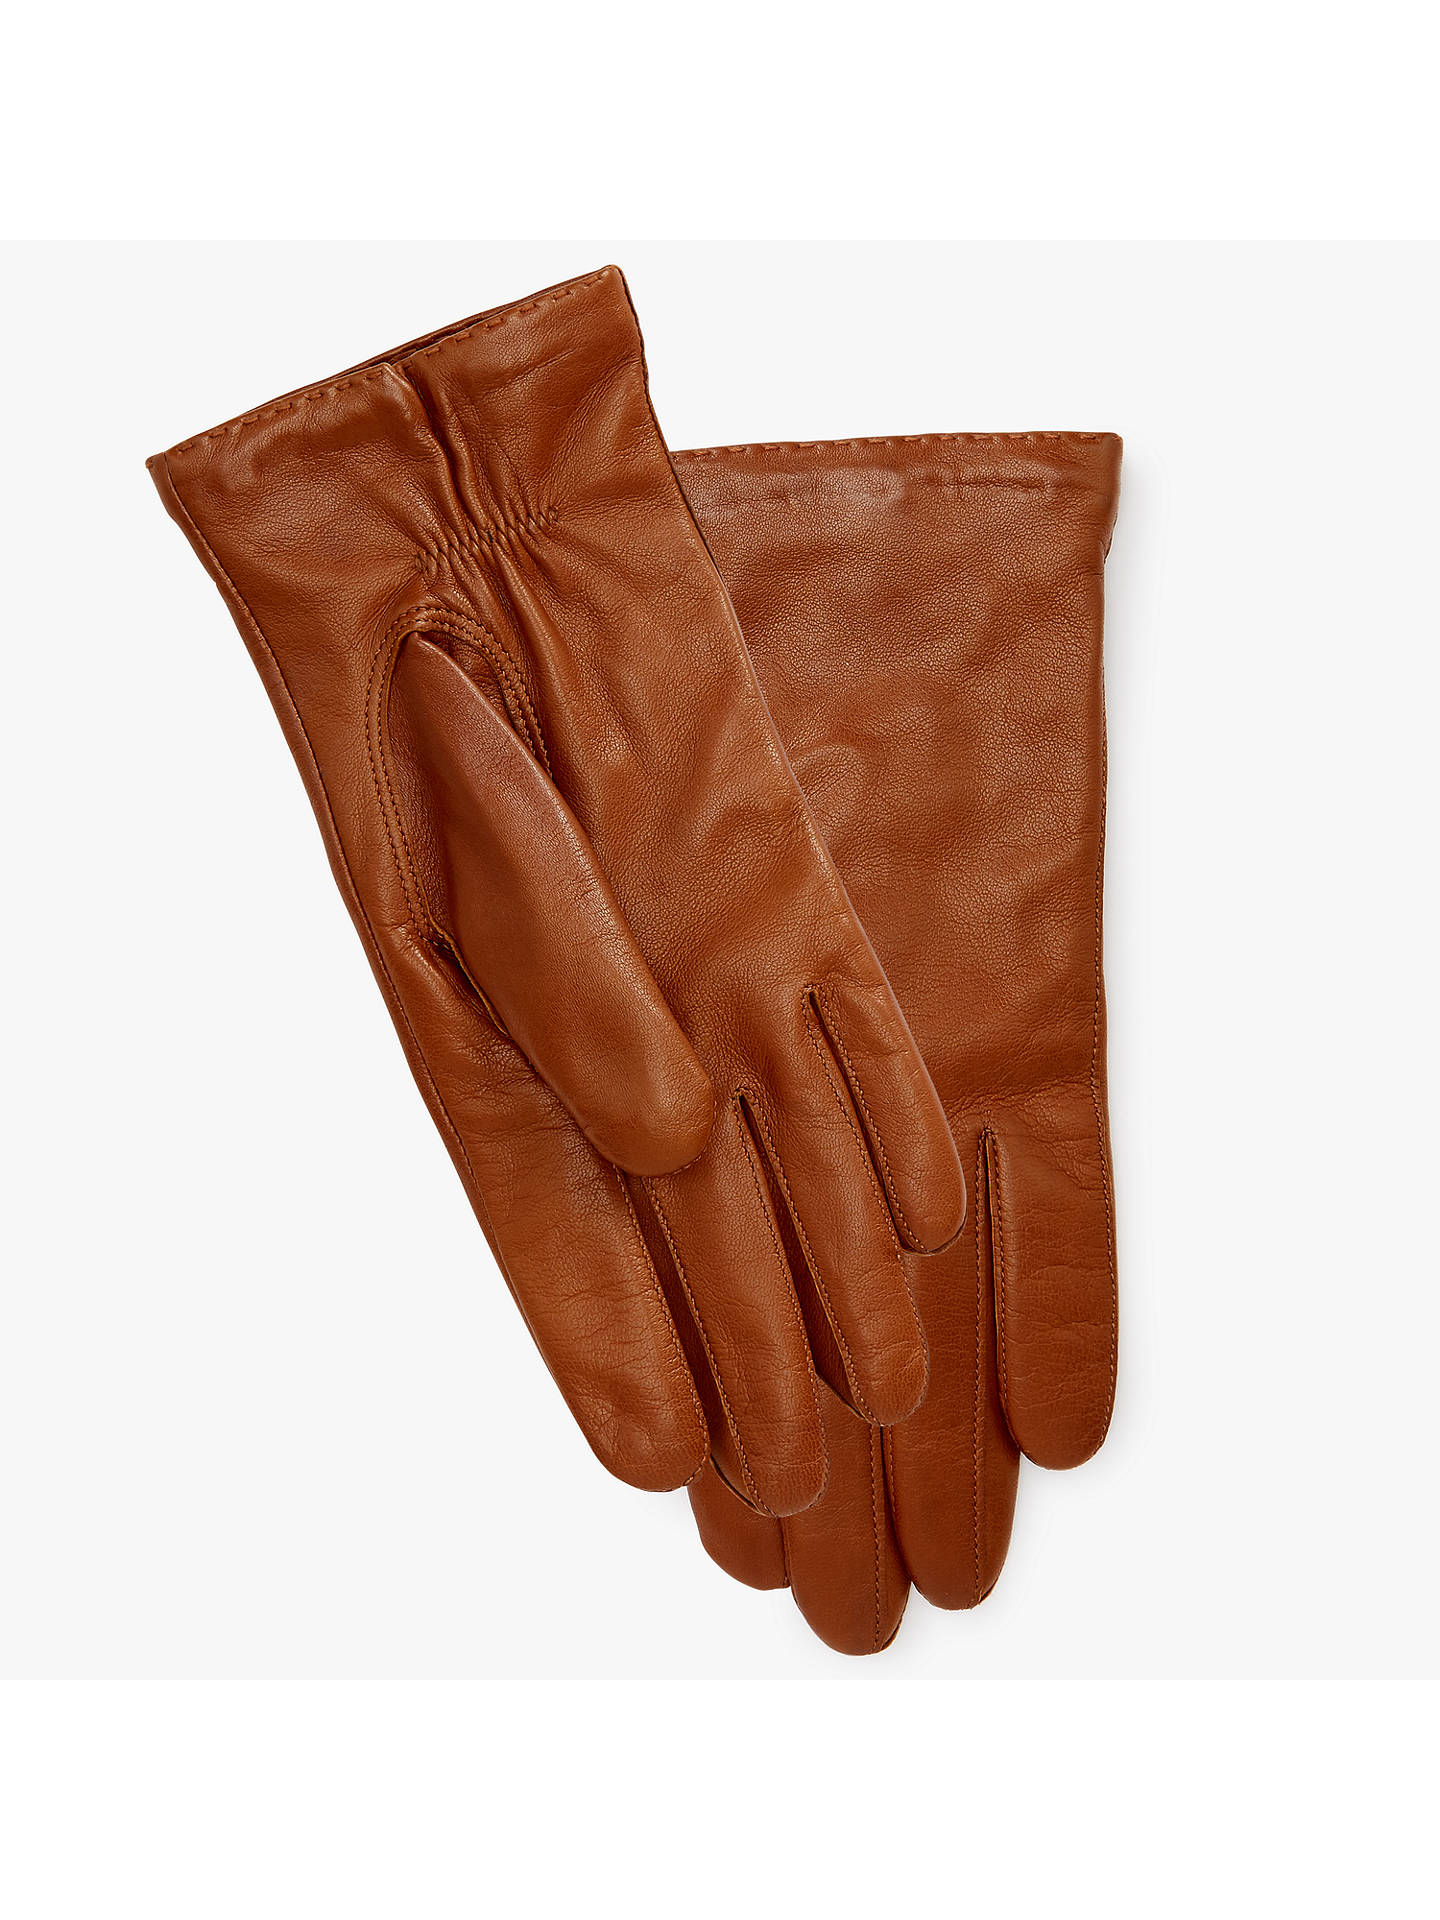 5c9e43a34 Buy John Lewis Cashmere Lined Leather Gloves, Tan, XS Online at  johnlewis.com ...